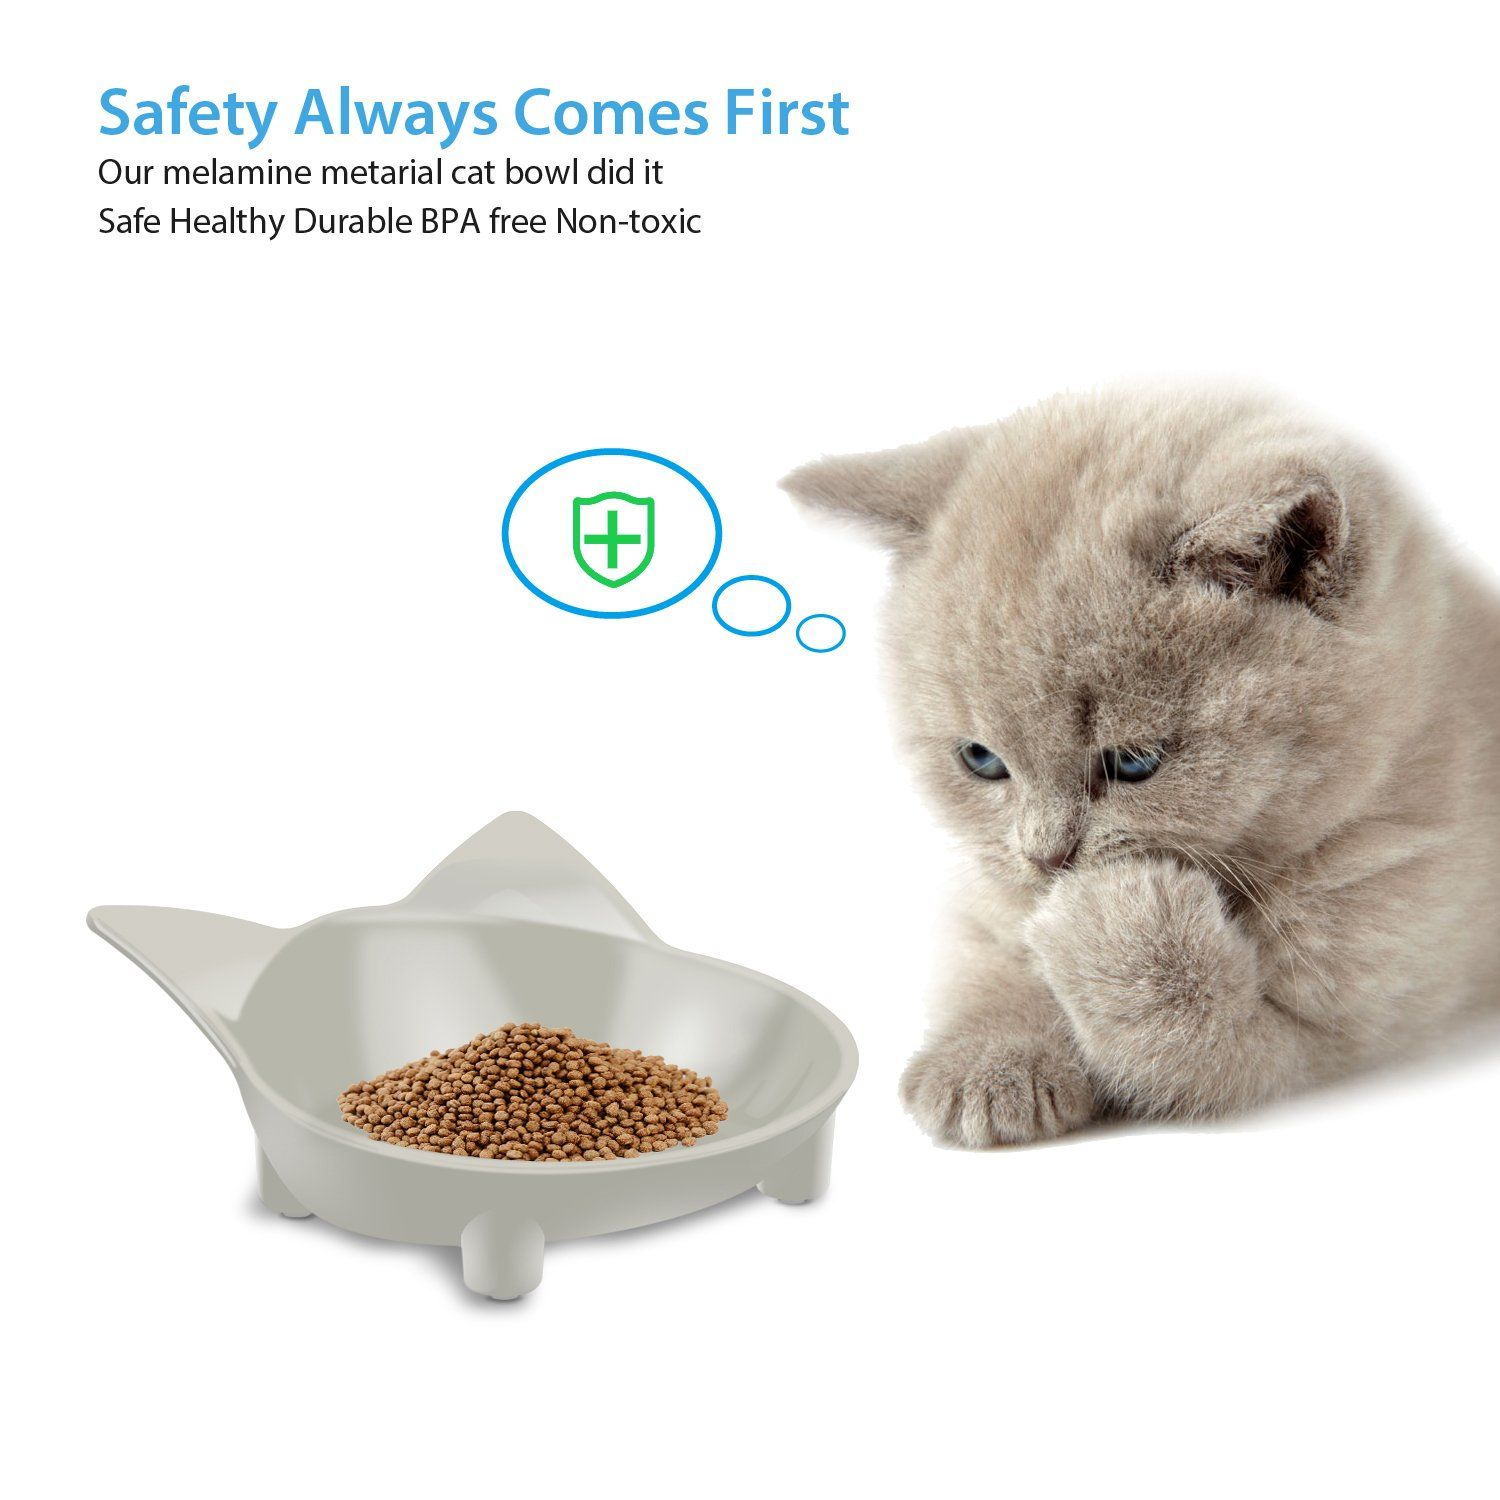 Aemiao Melamine Shallow Cat Food Bowl Wide Mouth Cat Dishes Non Slip Cat Feeding Bowls Cute Kitten Bowls For Relief Of W Cat Food Bowl Cat Feeding Kitten Bowls